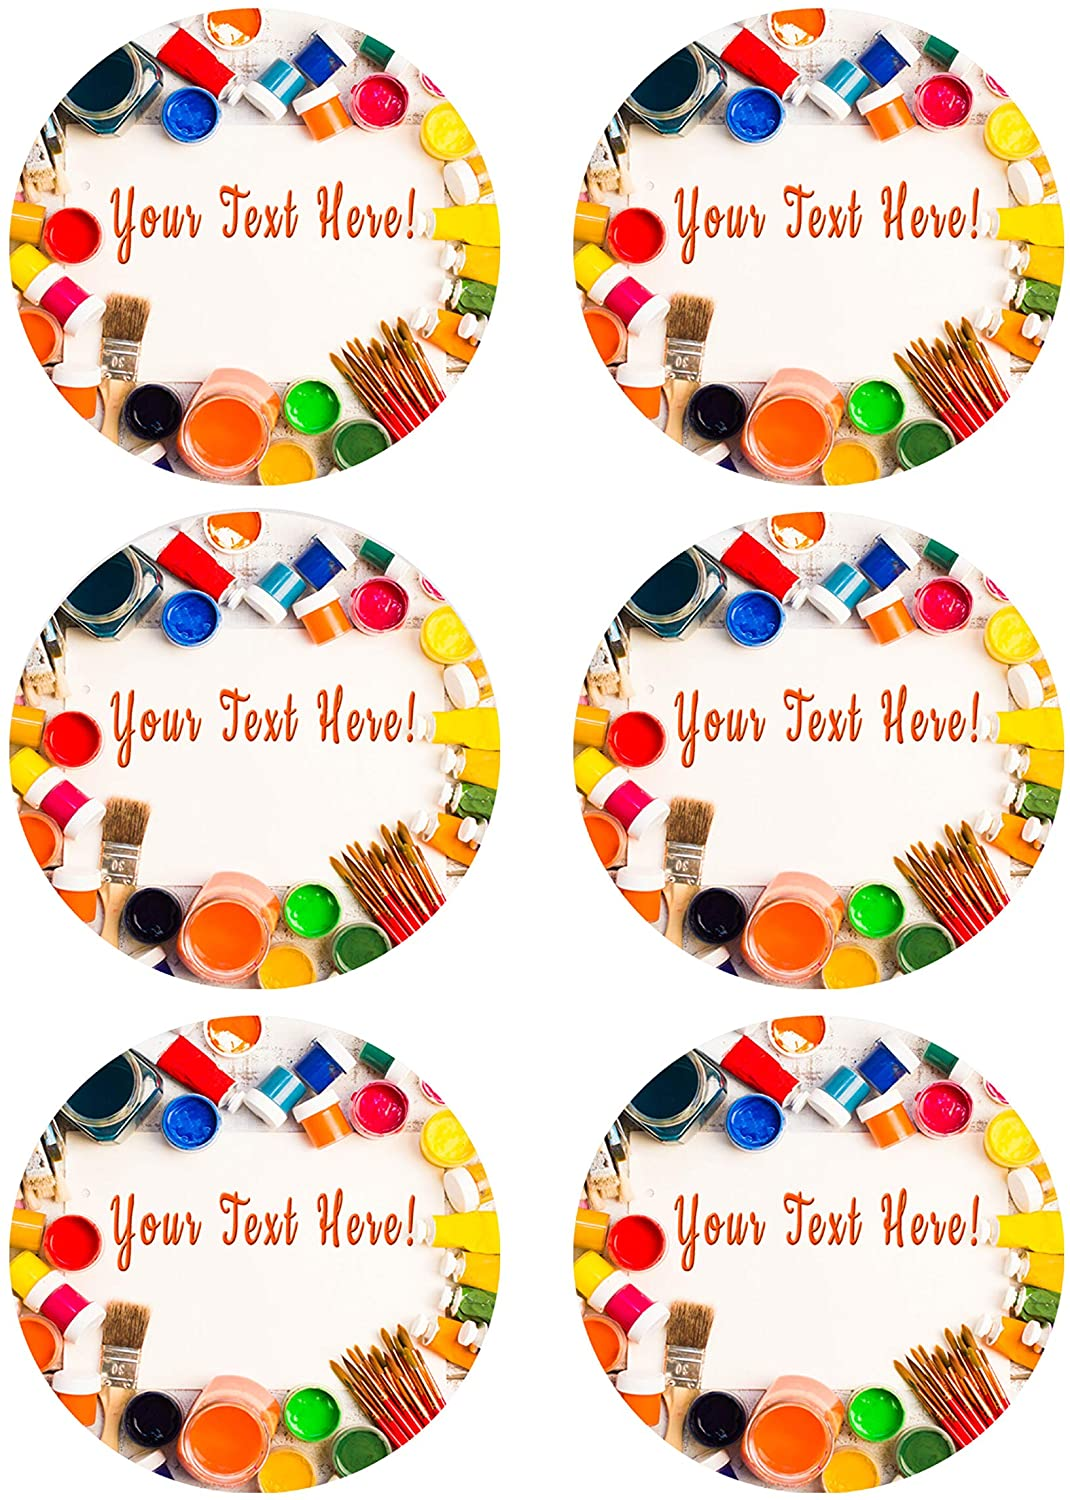 Paints Brushes and Palette - Edible Cupcake Toppers - 3.25